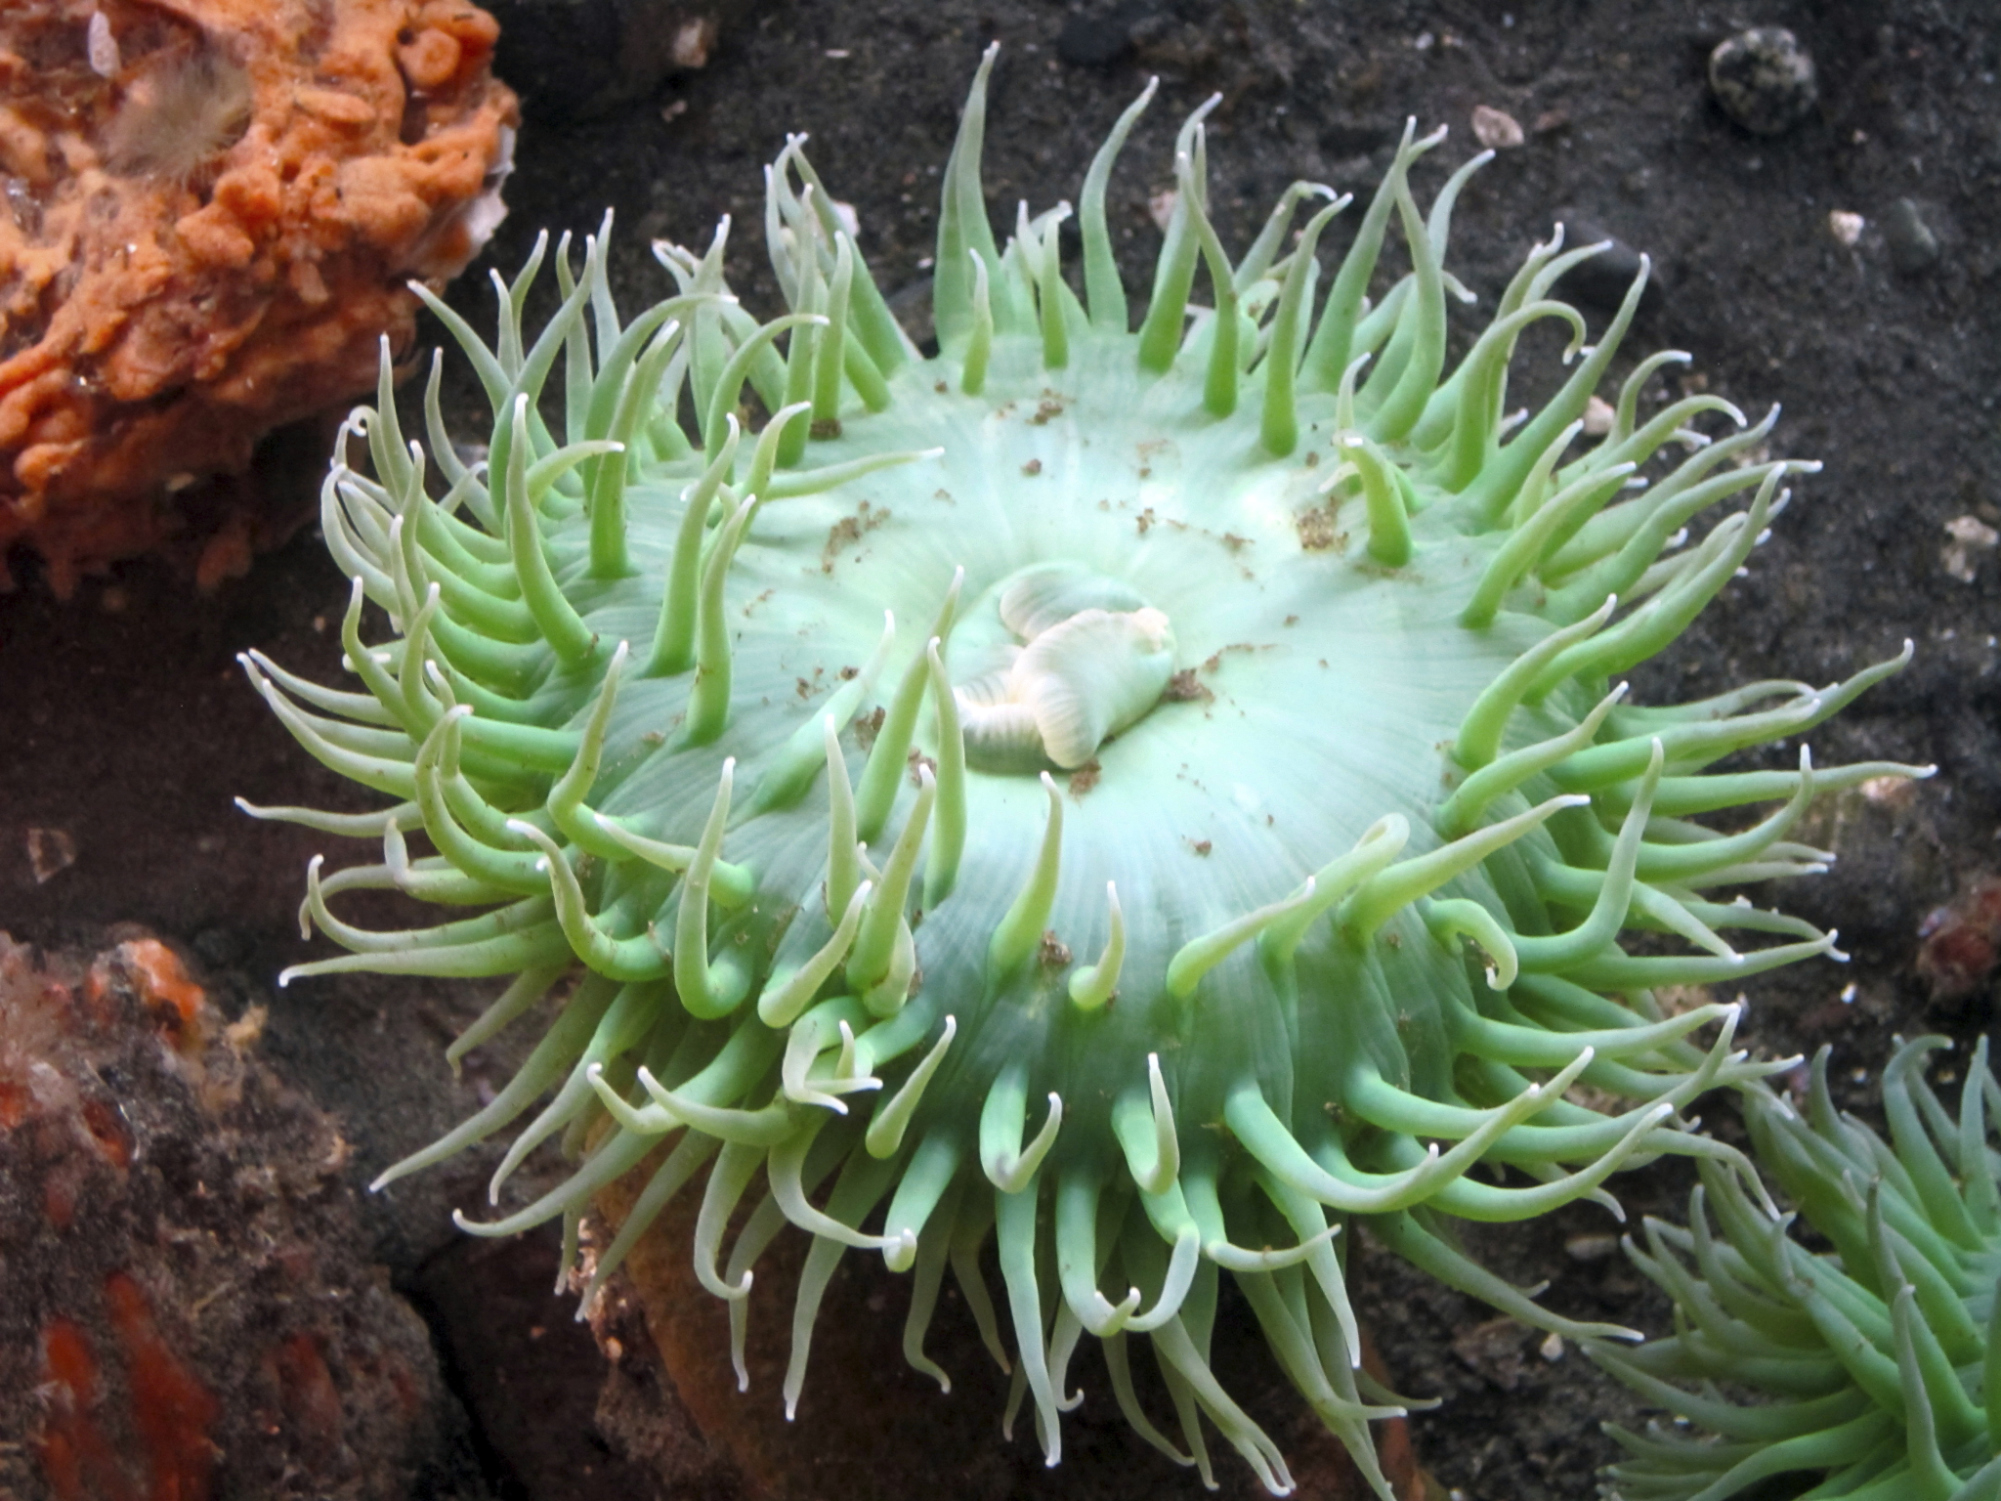 Ananomie Videos how to tell if your anemone is dead | animals - mom